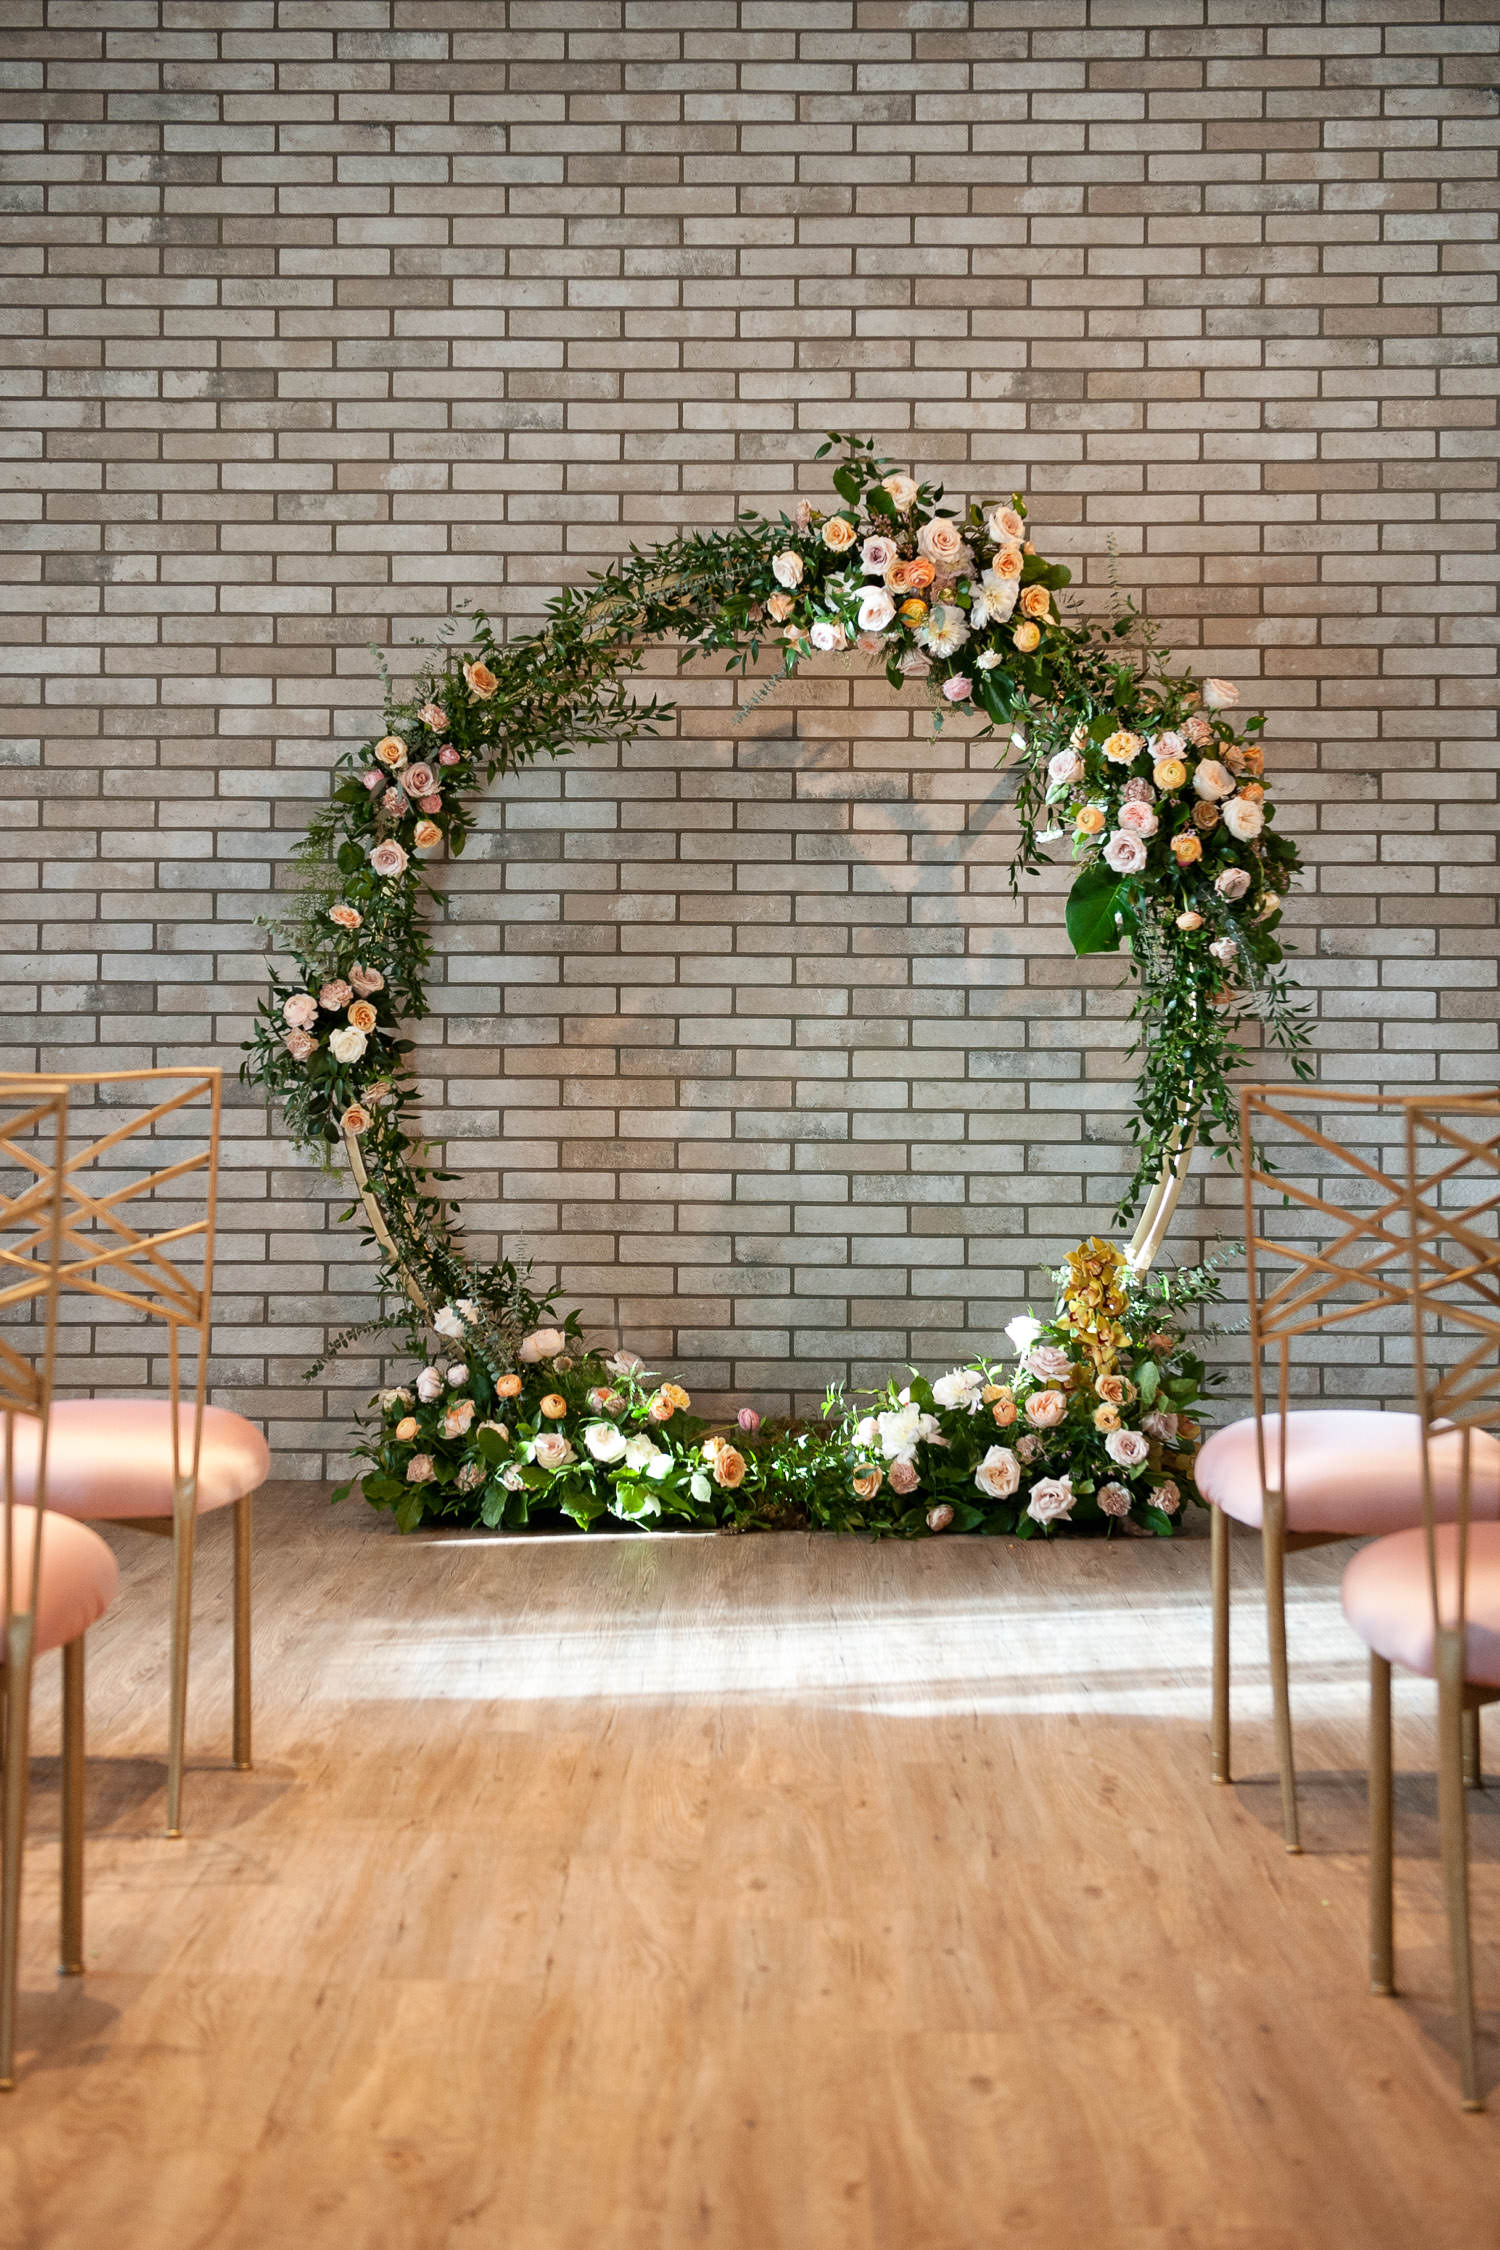 Floral arch by Flowers by Janie captured by Tara Whittaker Photography